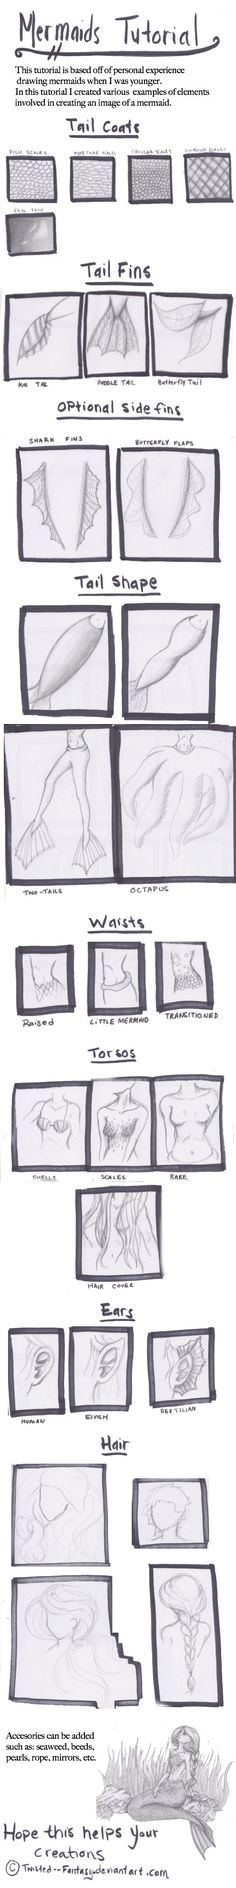 Mermaid Tutorial by Twisted--Fantasy on deviantART || how to draw a mermaid, tail